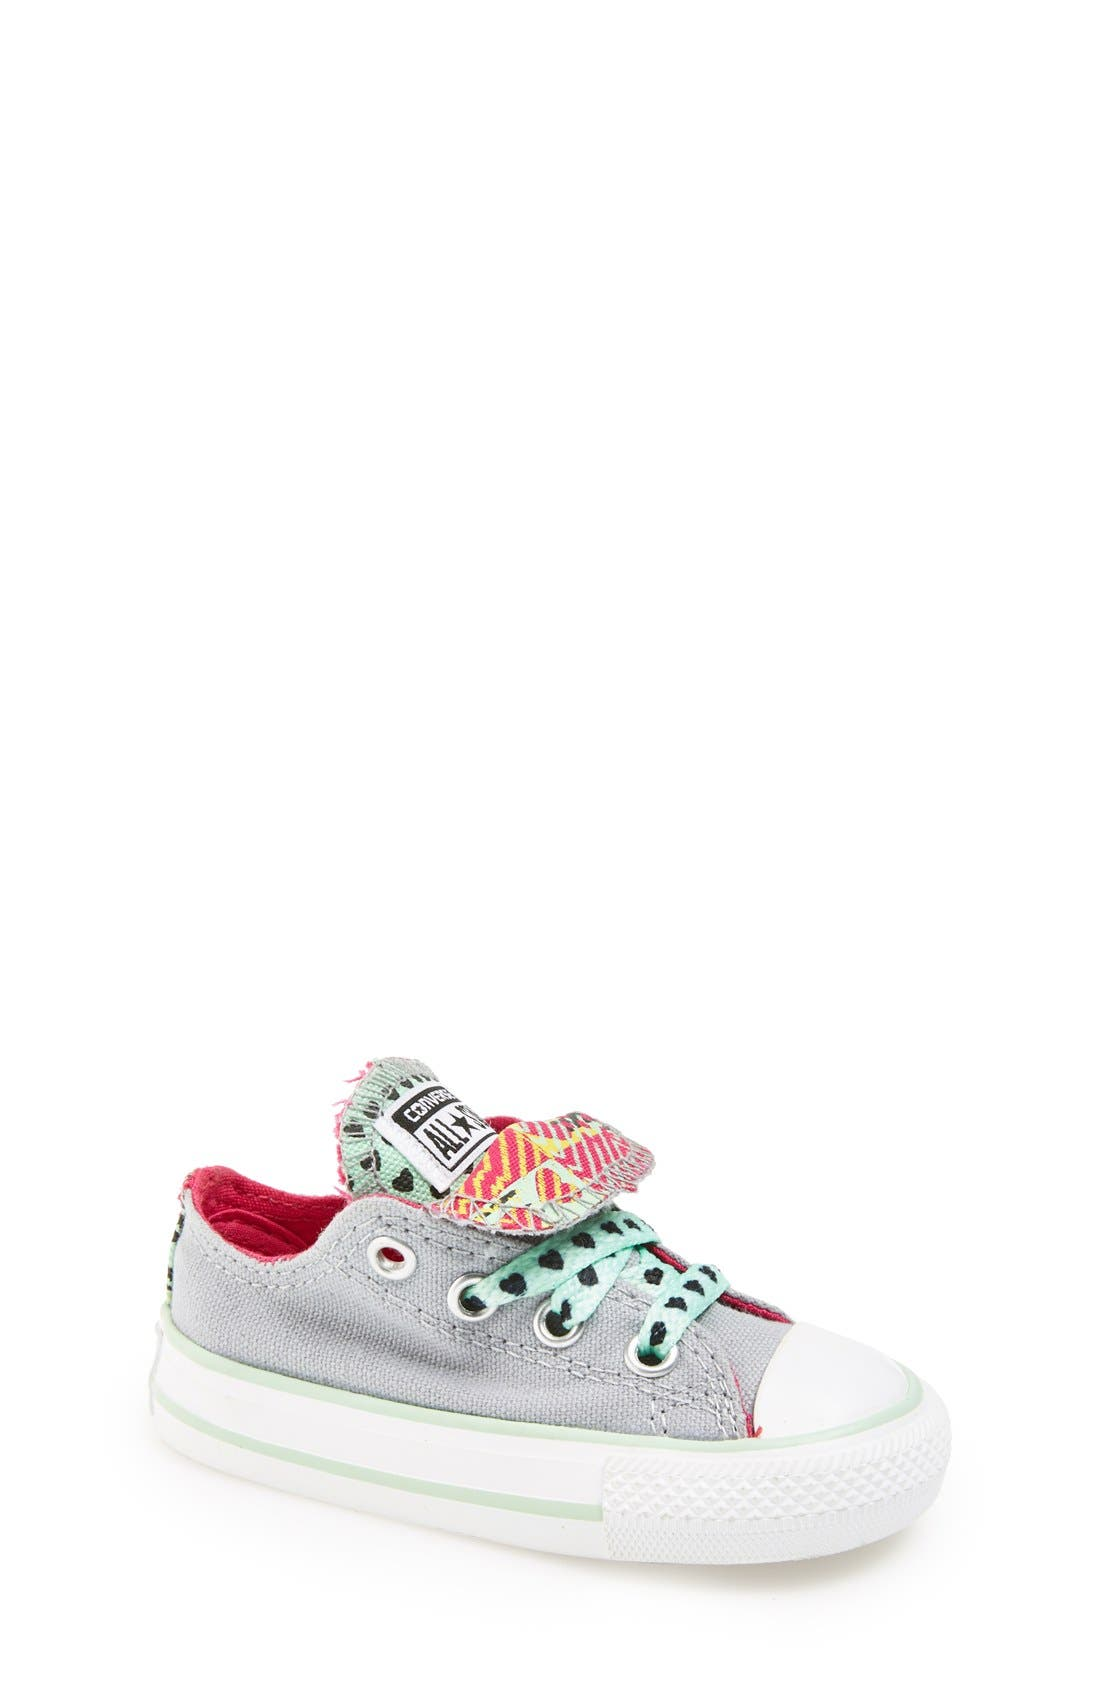 Main Image - Converse Chuck Taylor® All Star® Double Tongue Sneaker (Baby, Walker & Toddler)